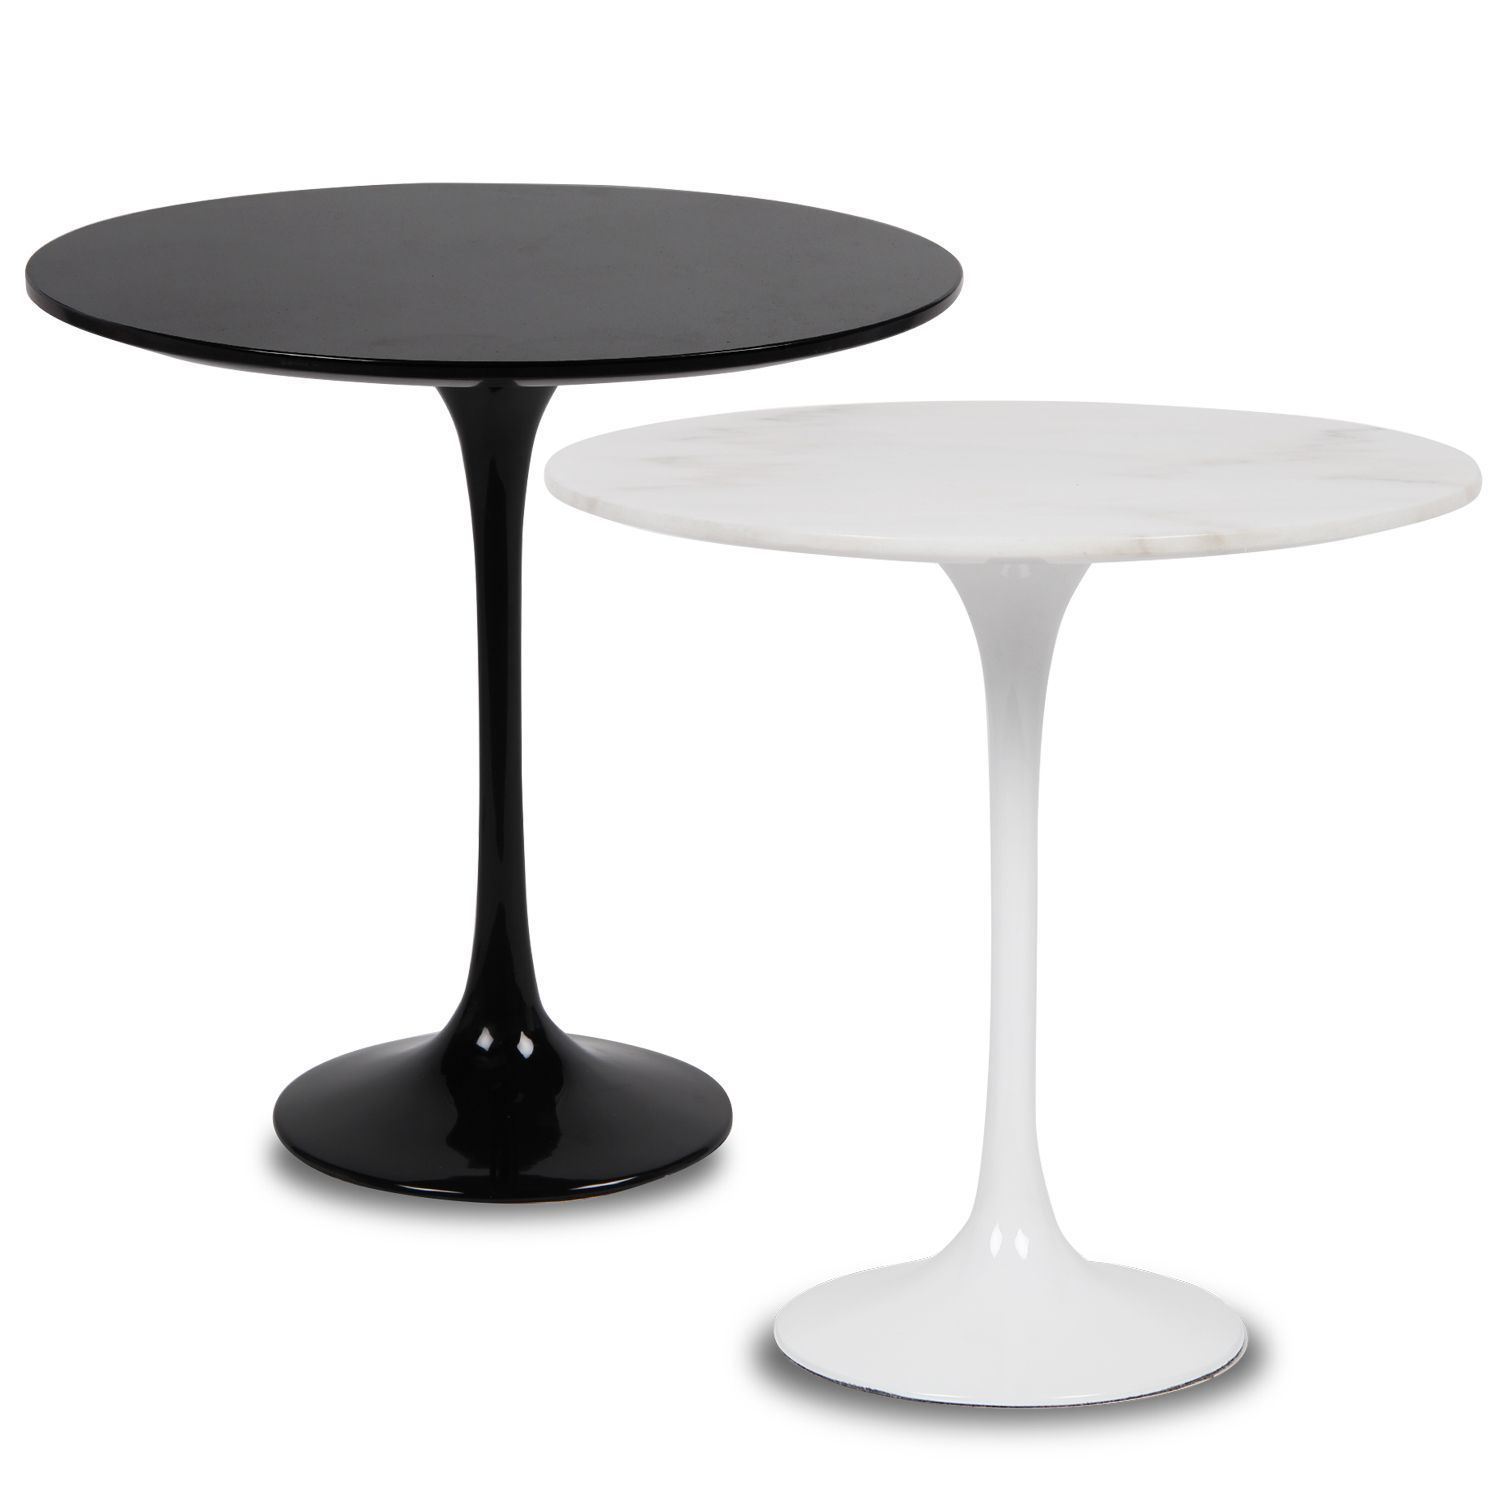 Astounding Saarinen Coffee Table Coffee Table Saarinen 20 In 2019 Pabps2019 Chair Design Images Pabps2019Com